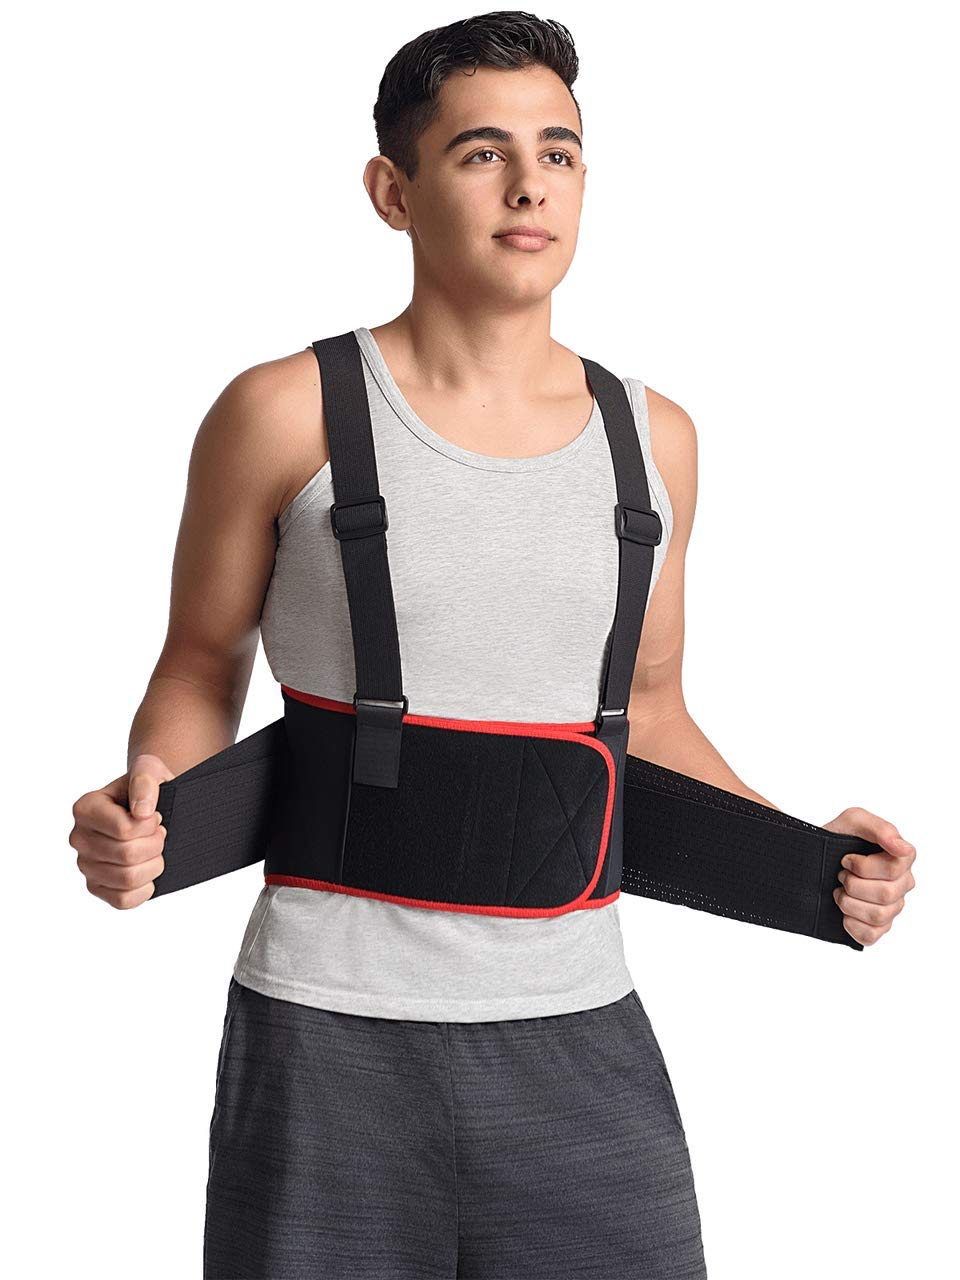 MAXAR Breathable Lower Back Support with Detachable Suspenders IBS-3000: Black Large by Maxar